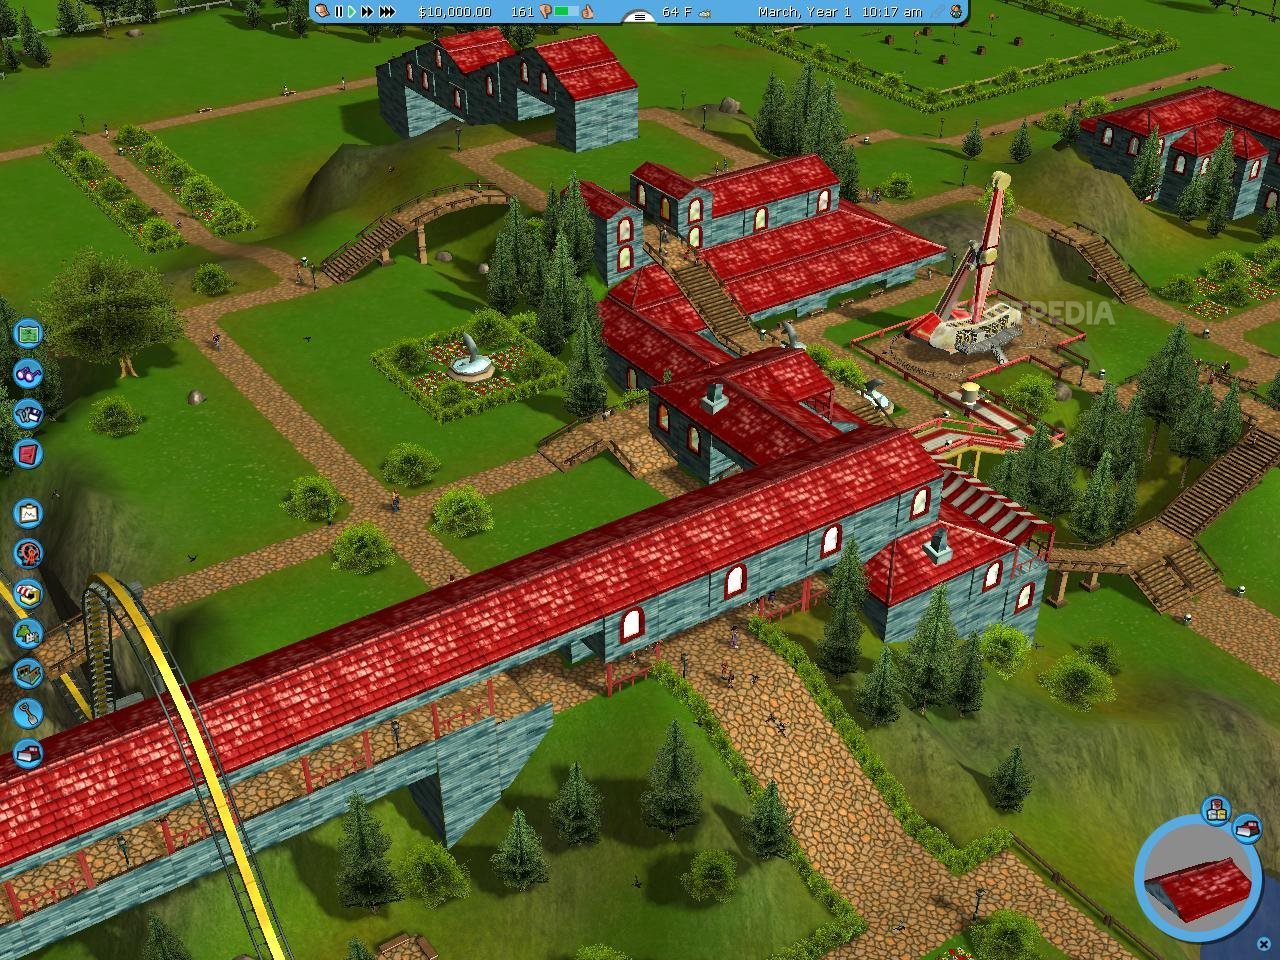 RollerCoaster Tycoon 3 Demo Download